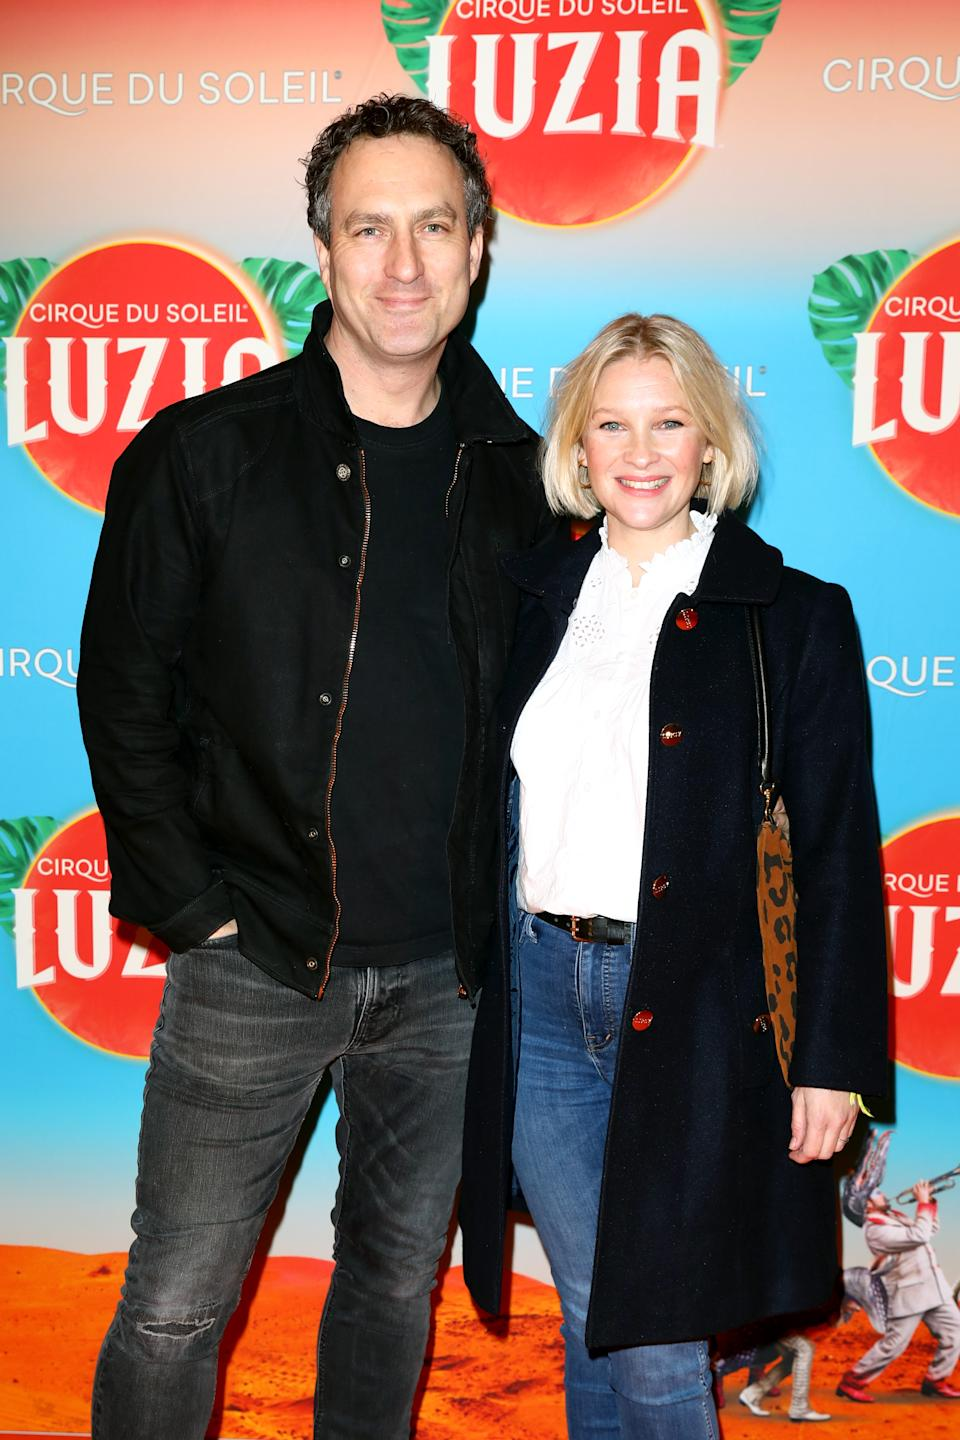 LONDON, ENGLAND - JANUARY 15: Joanna Page (R) and James Thornton attend Cirque du Soleil's